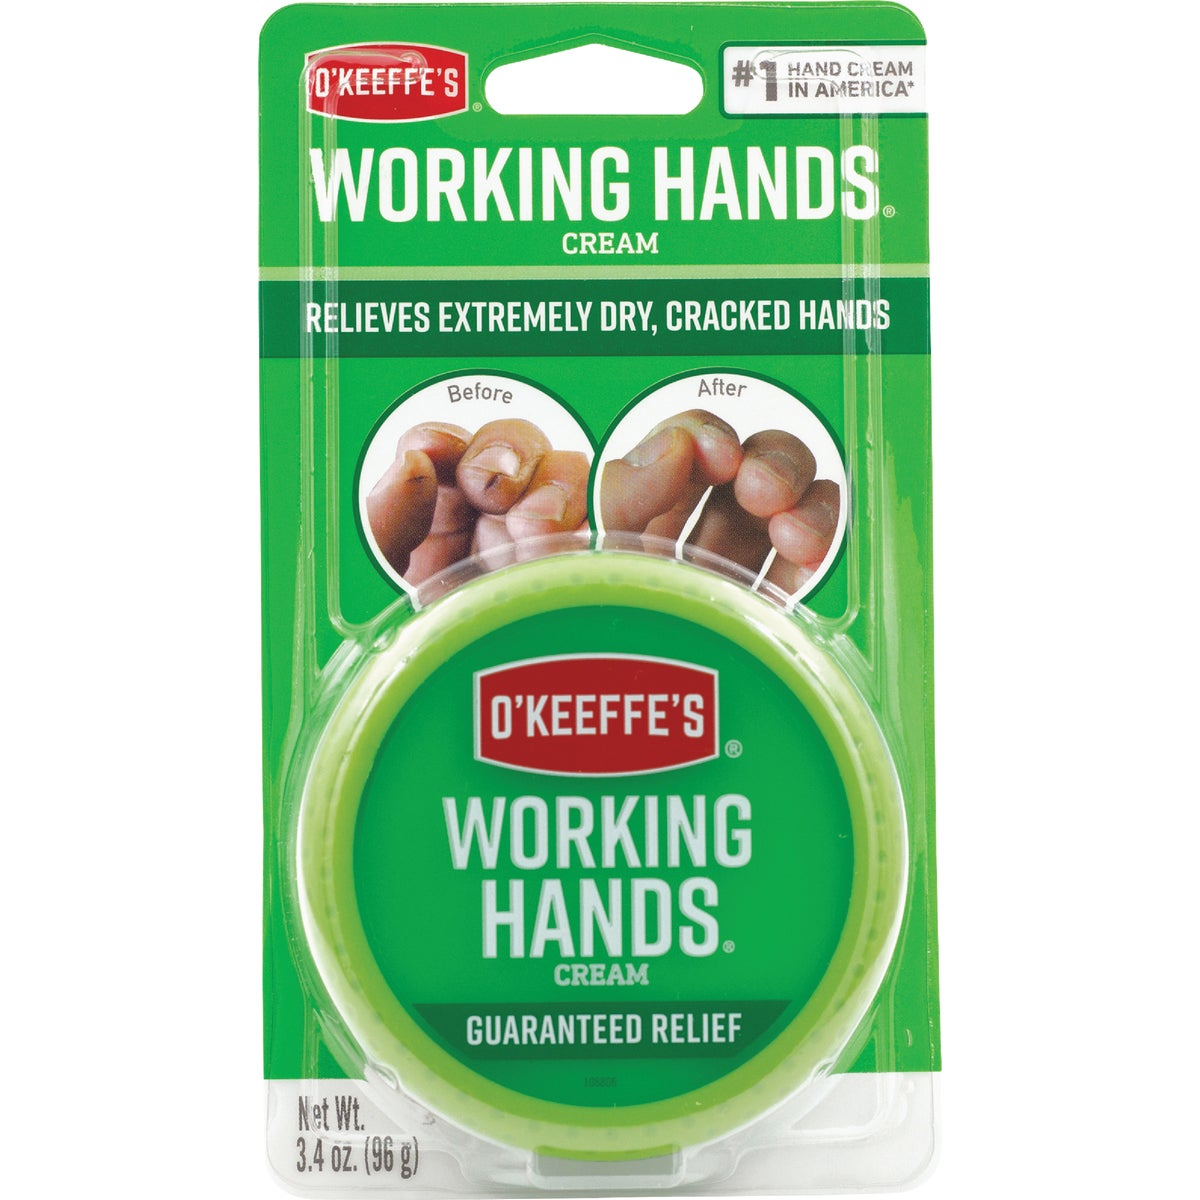 3.4 WORKING HANDS CREME - TR3500-6 by Gorilla Glue Co